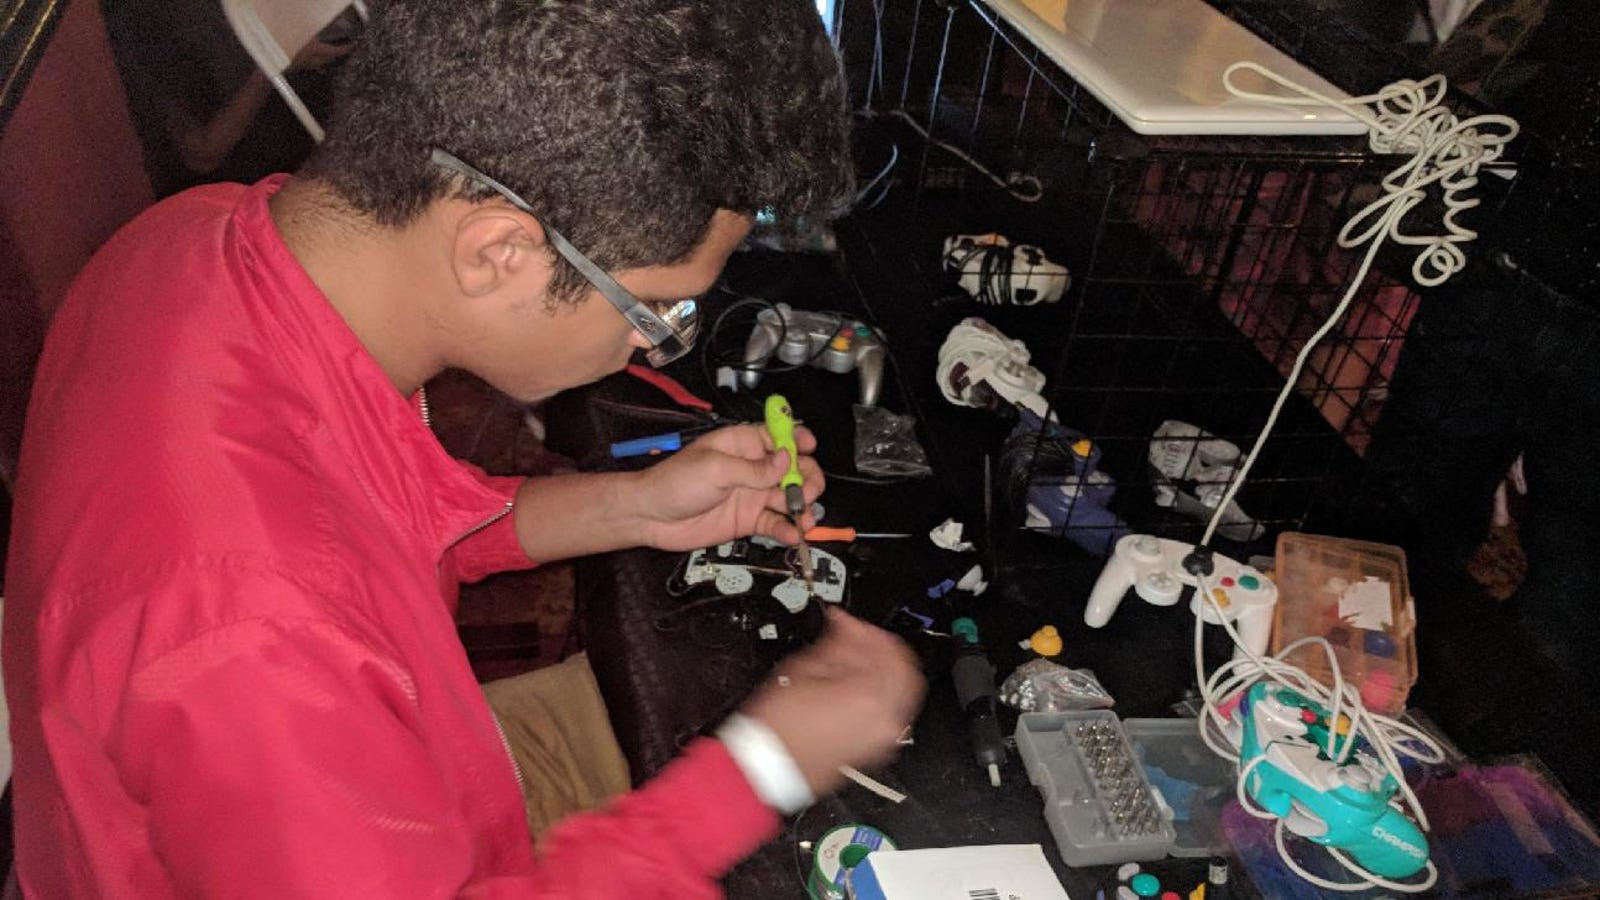 Meet The Controller Mechanic Who Repairs SmashPros' Hardware On The Fly